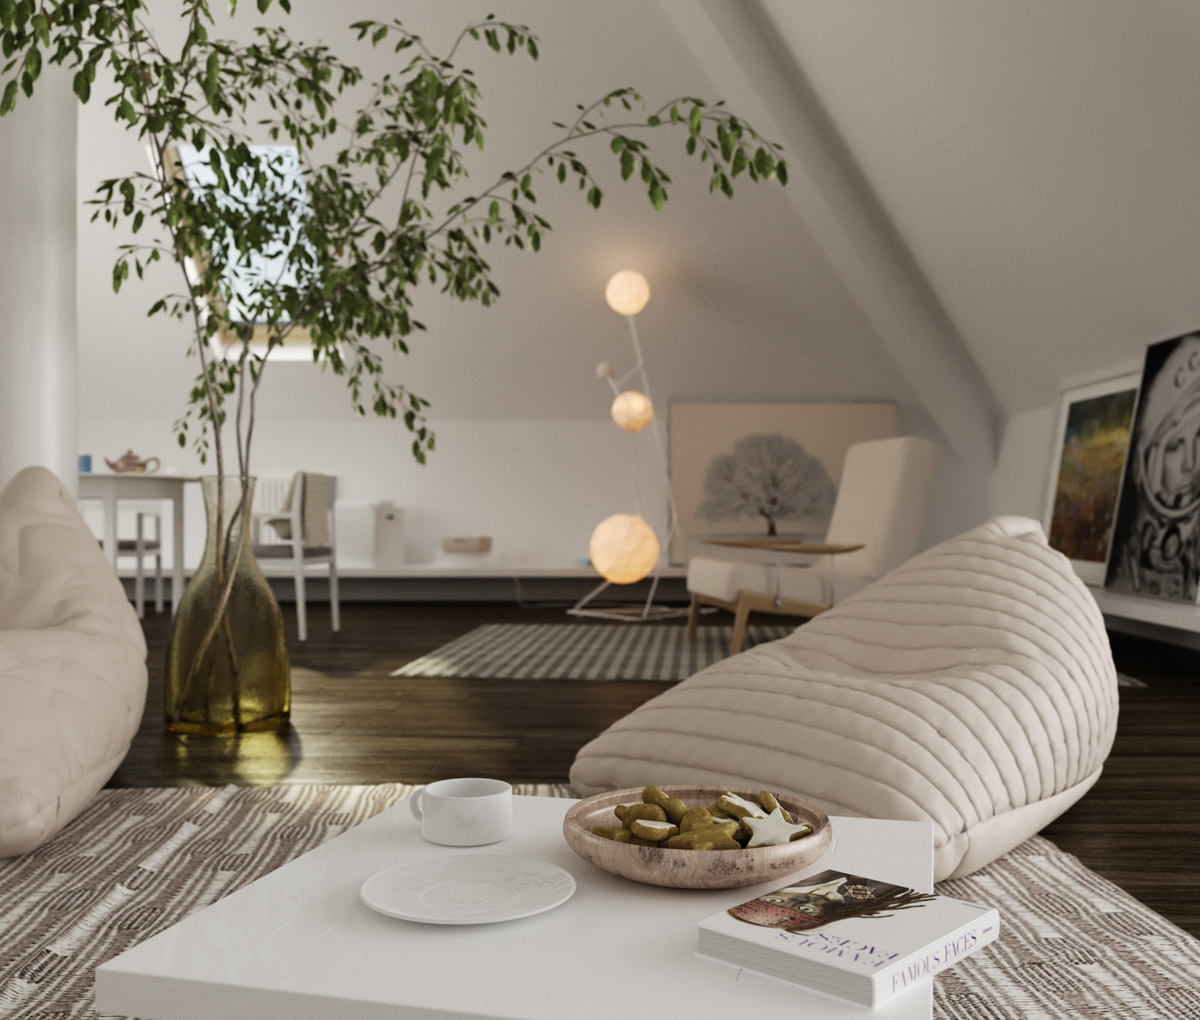 Living room design with artistic touch